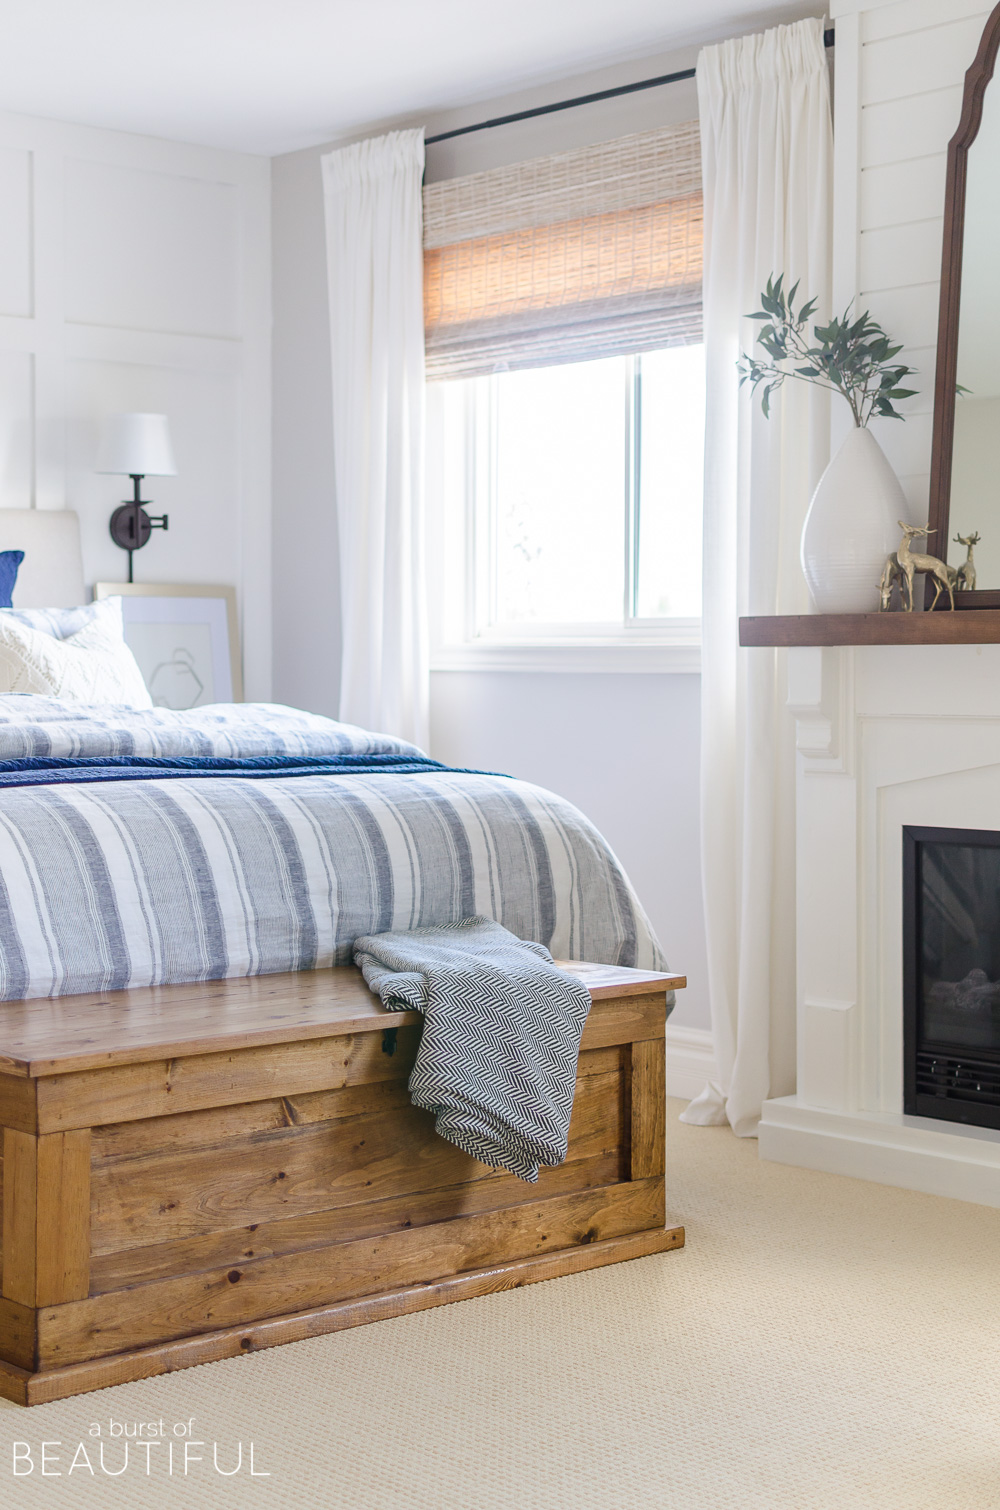 Create a cozy and inviting bedroom with these simple steps